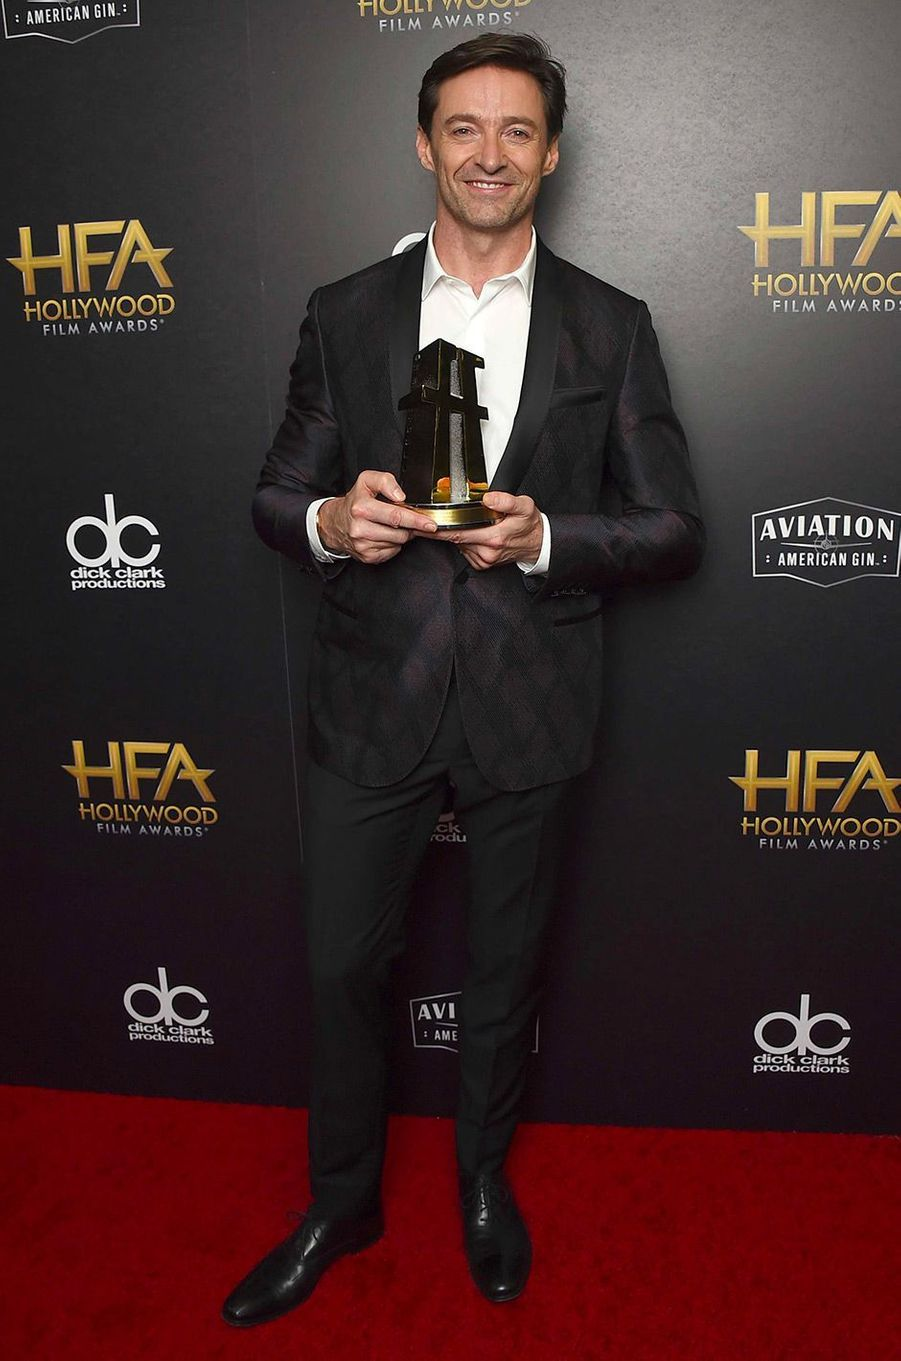 Hugh Jackman aux Hollywood Film Awards